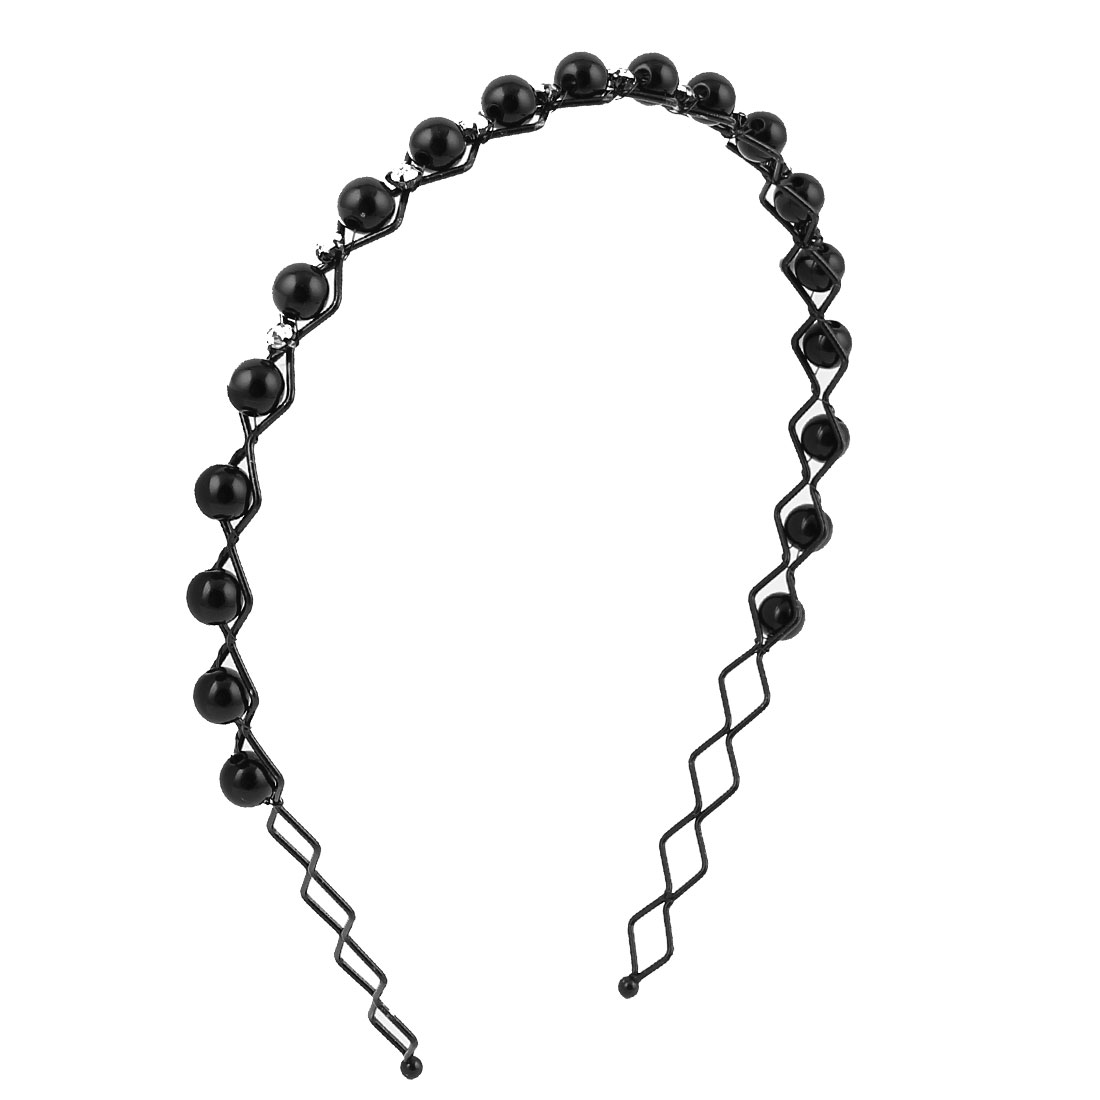 Lady Black Faux Beads Decor Wave Style Hair Hoop Hairband Headband Barrette Hairpin Headdressing